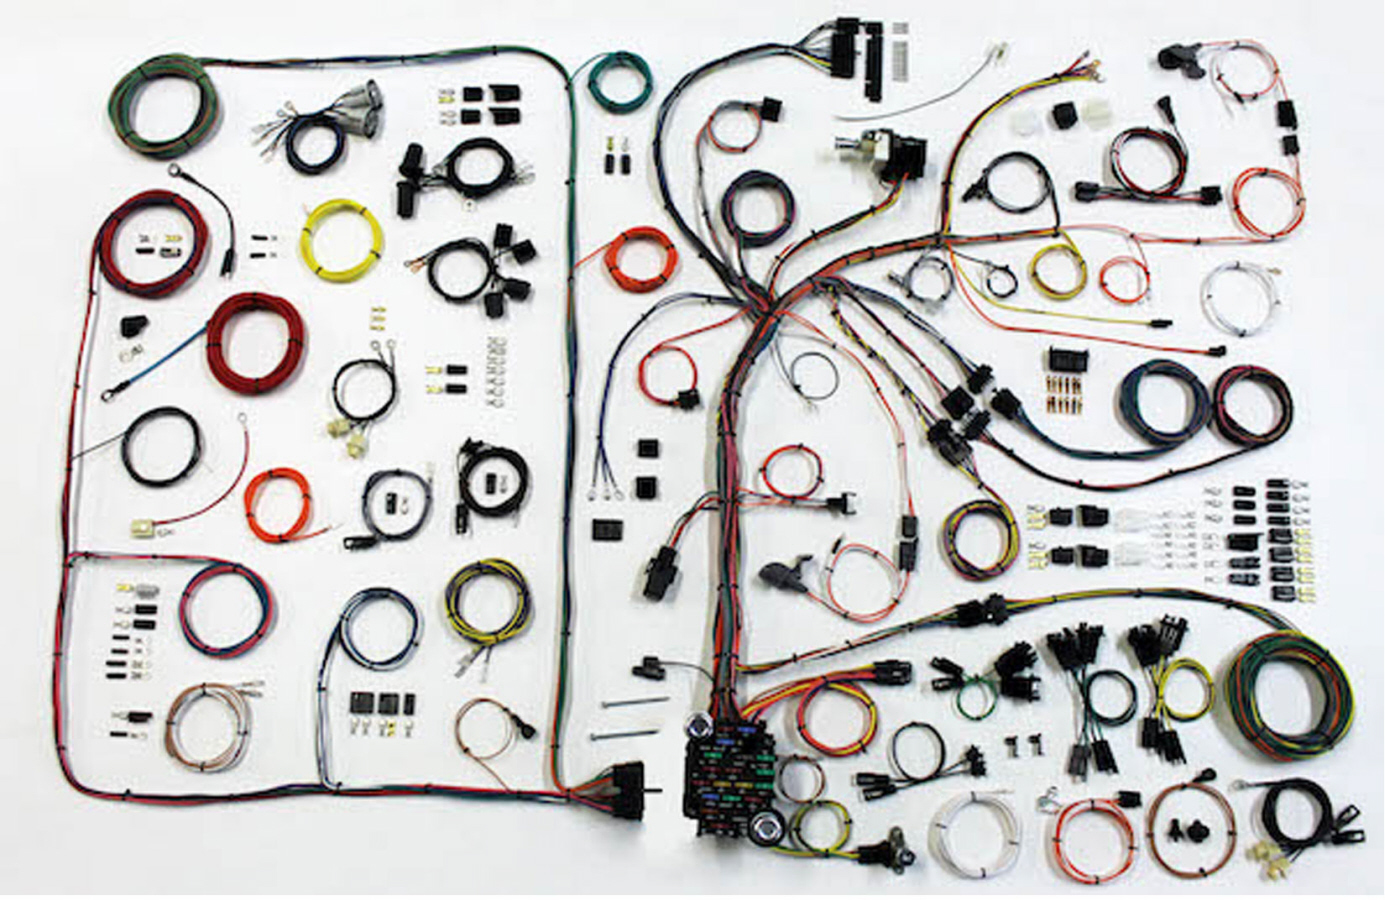 68 72 gto lemans classic update wiring harness kit 510540. Black Bedroom Furniture Sets. Home Design Ideas